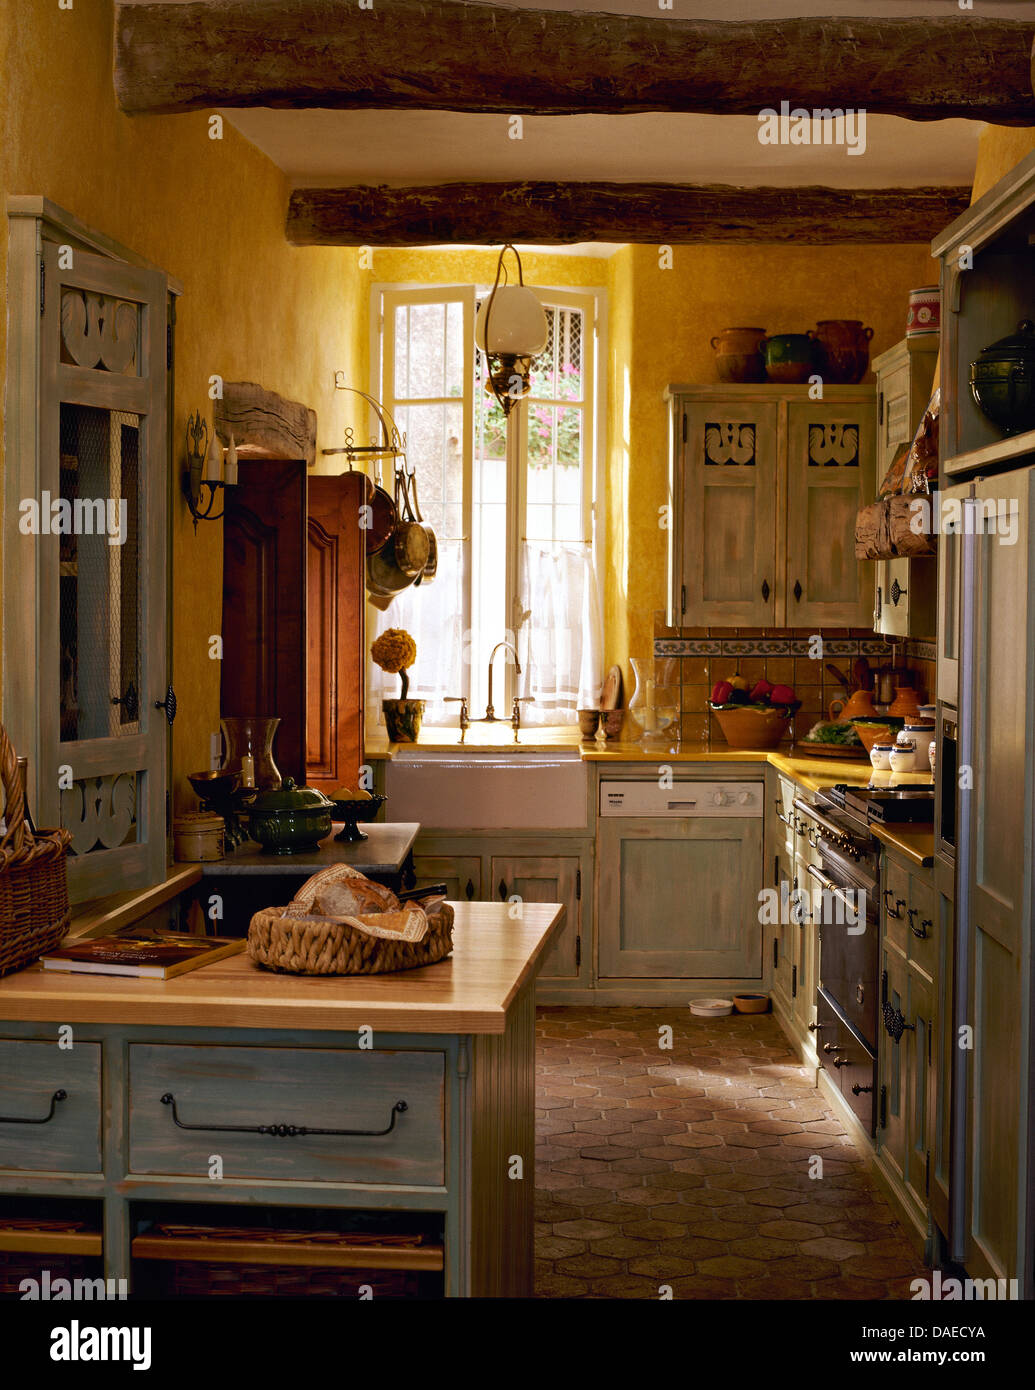 Kitchens With Terracotta Floors Pale Gray Cupboards In Yellow French Country Kitchen With